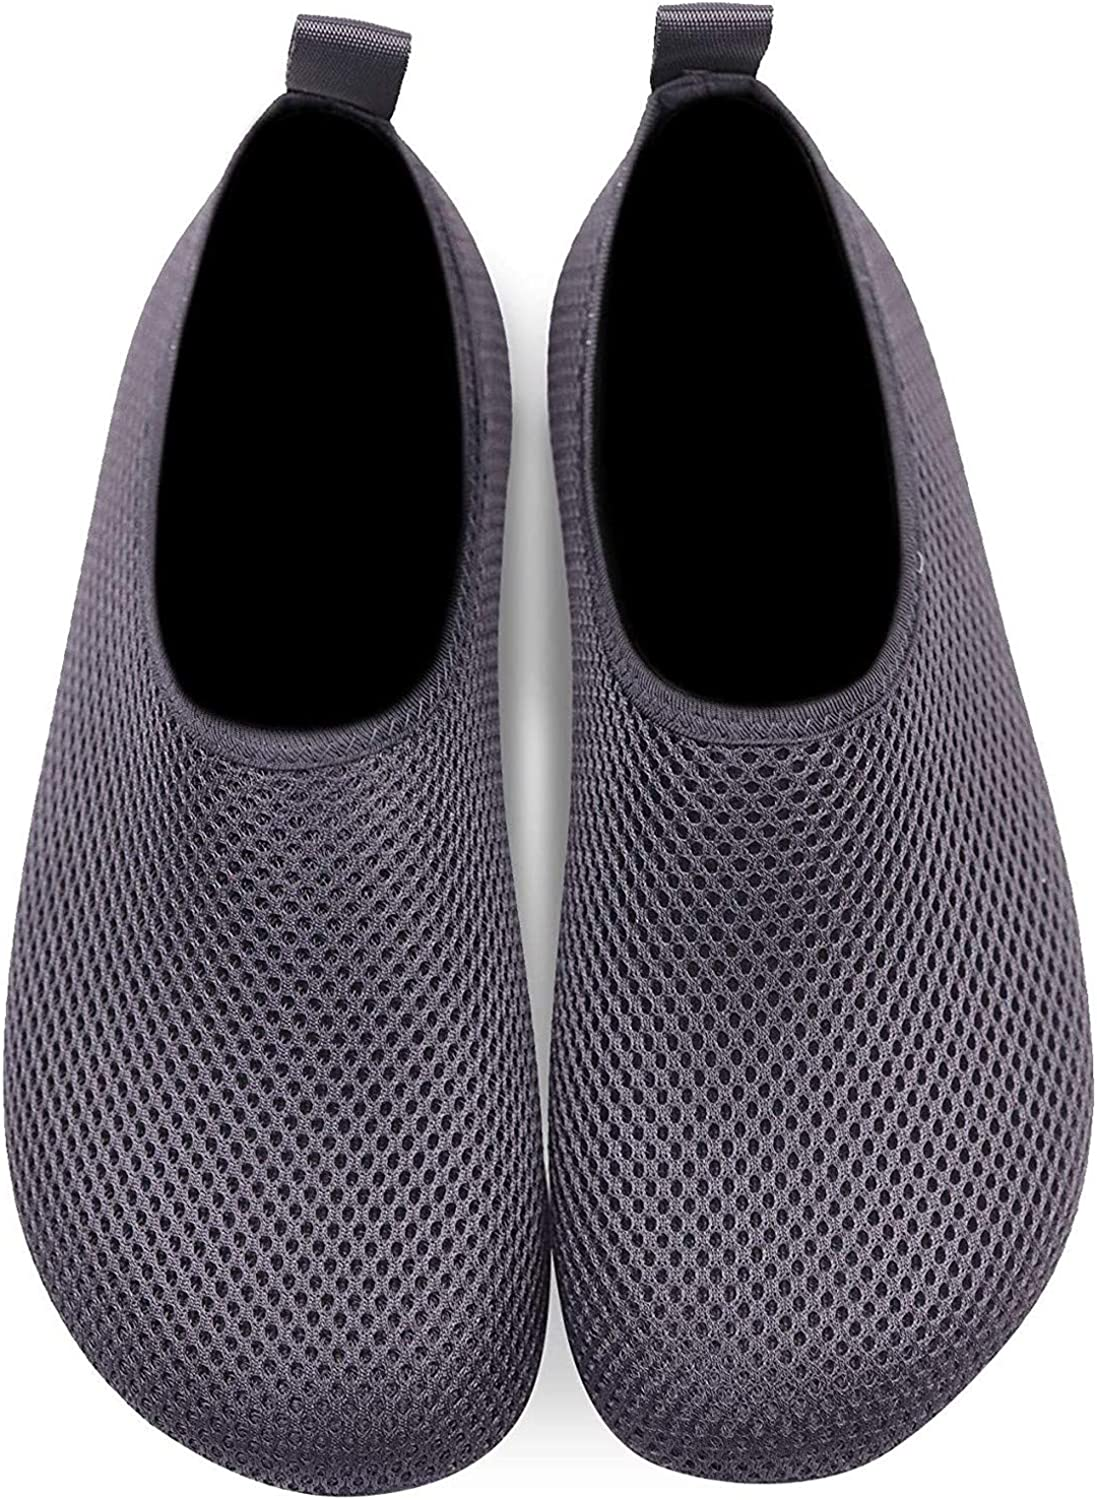 Aunimeifly Mens Womens Water Shoes Max 69% OFF Barefoot Pool shipfree Beach Qui